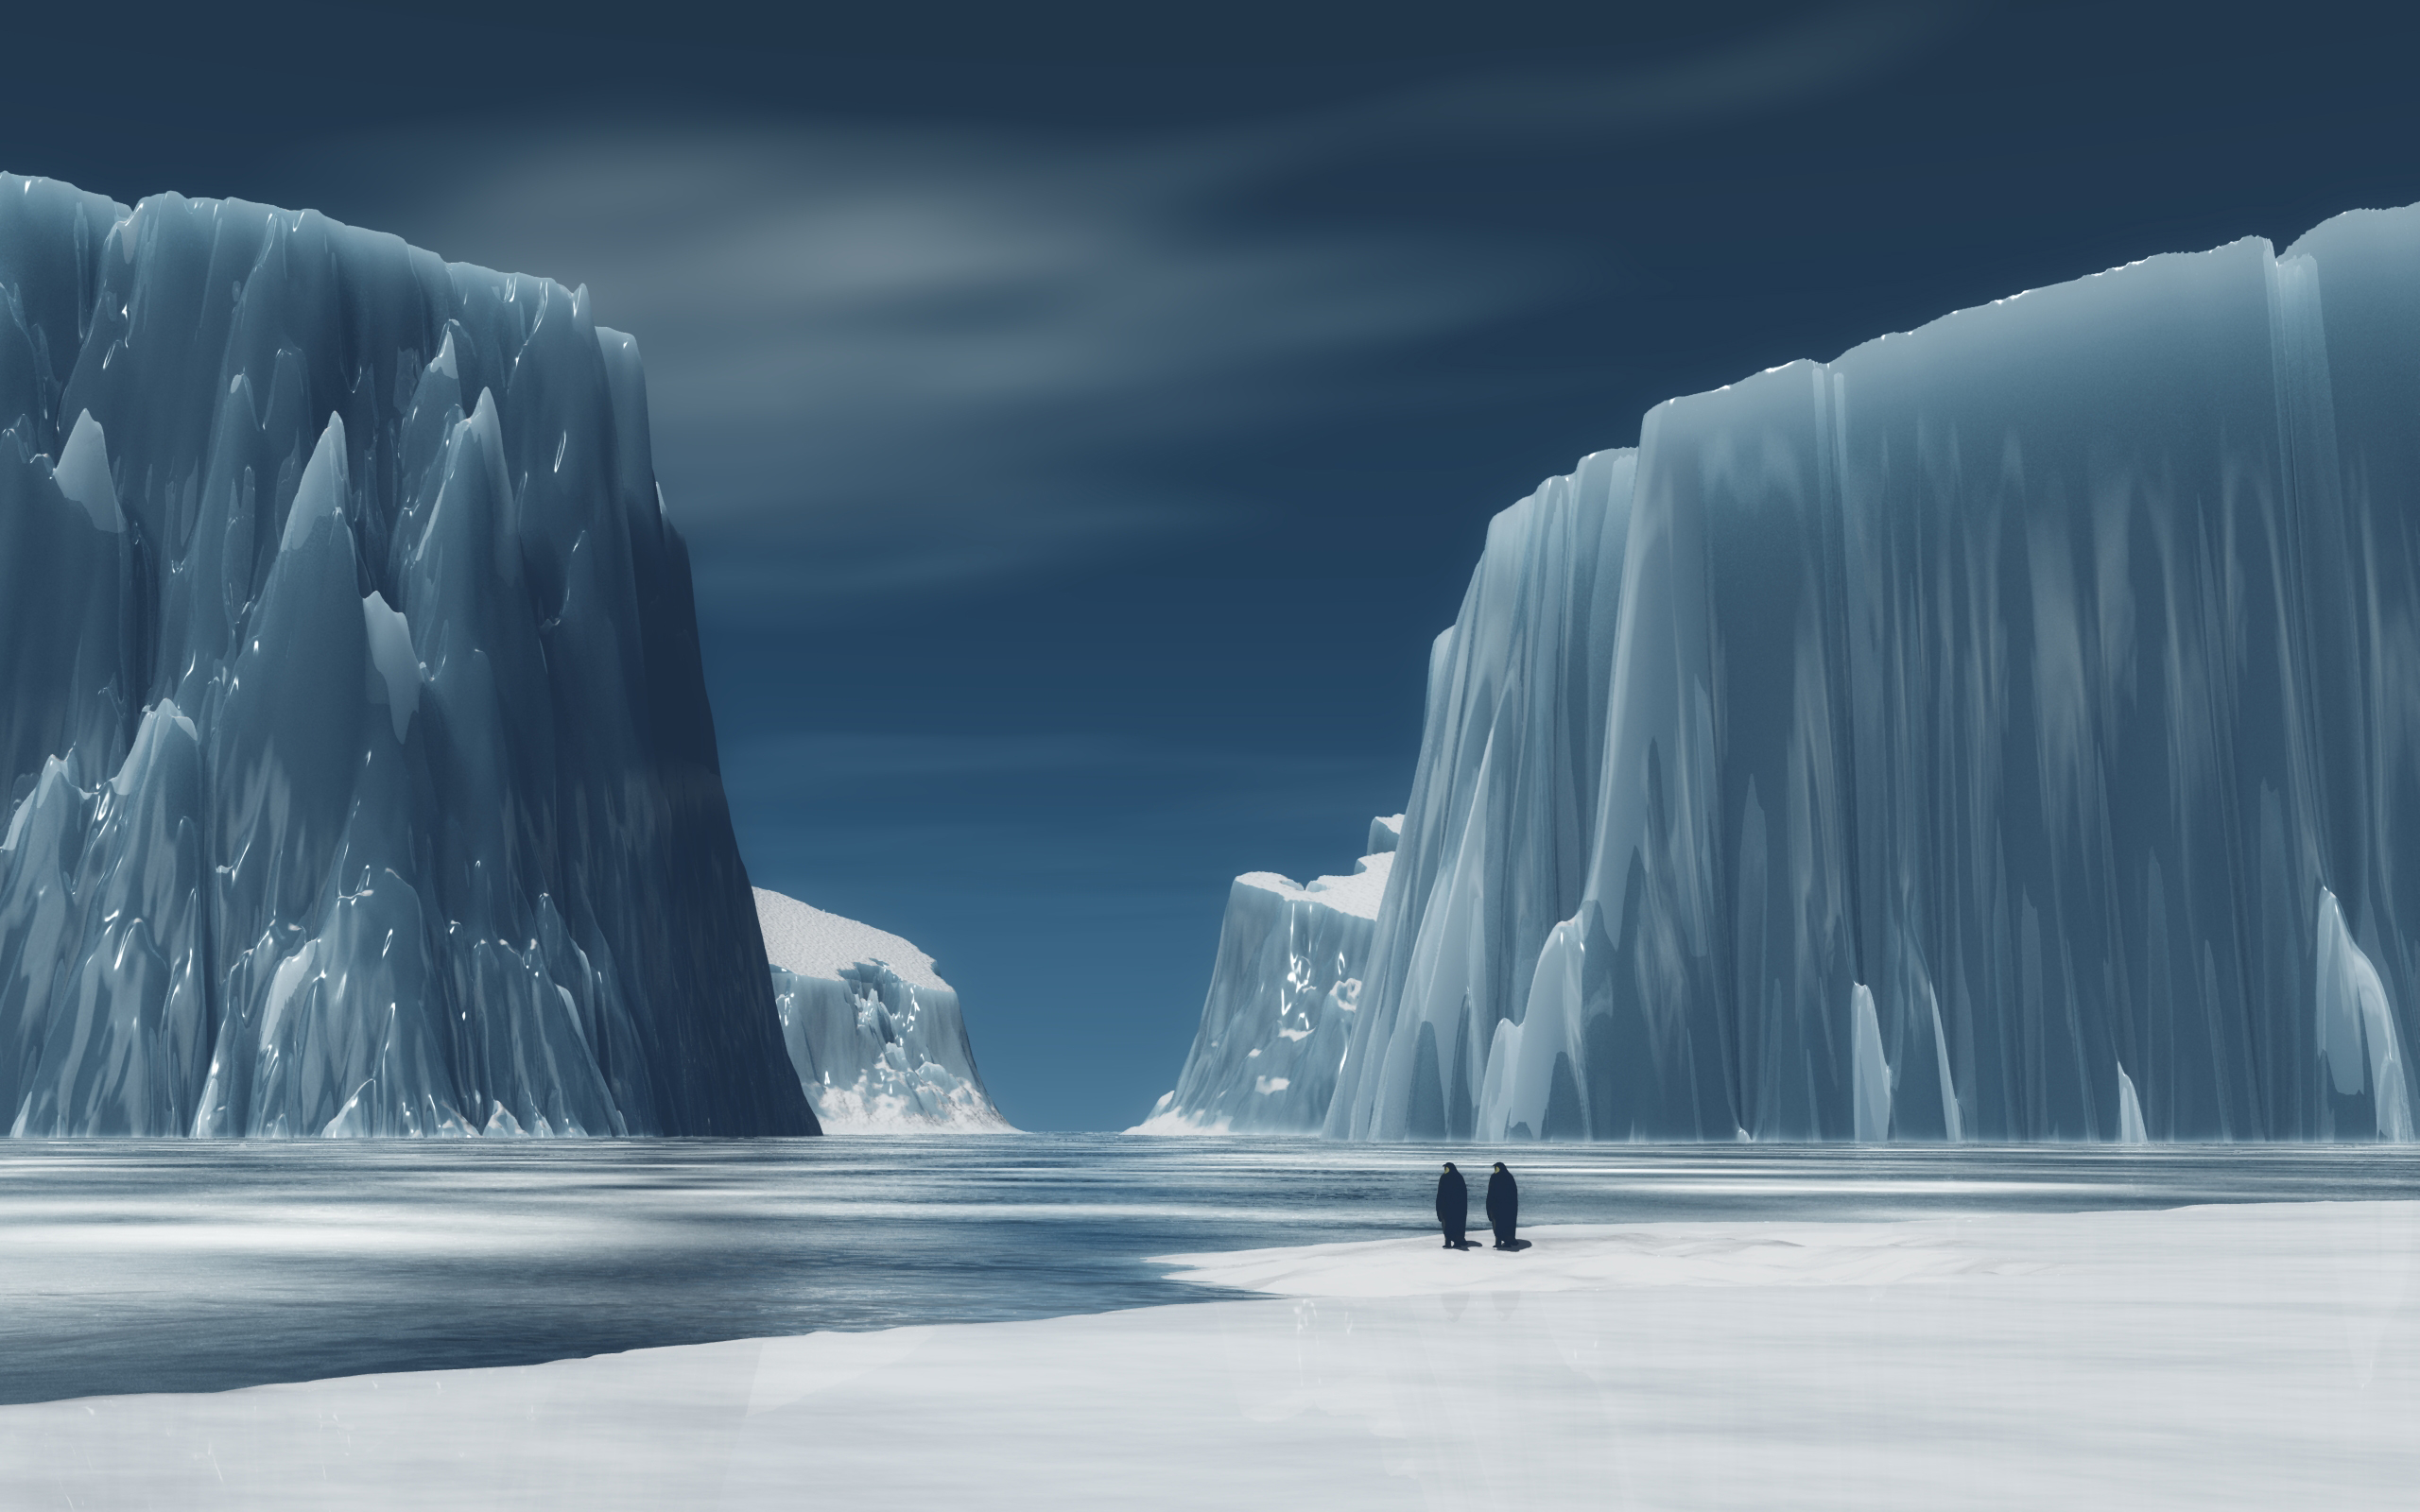 Download   Ice Mountains In Antarctica 706121   HD Wallpaper 2560x1600